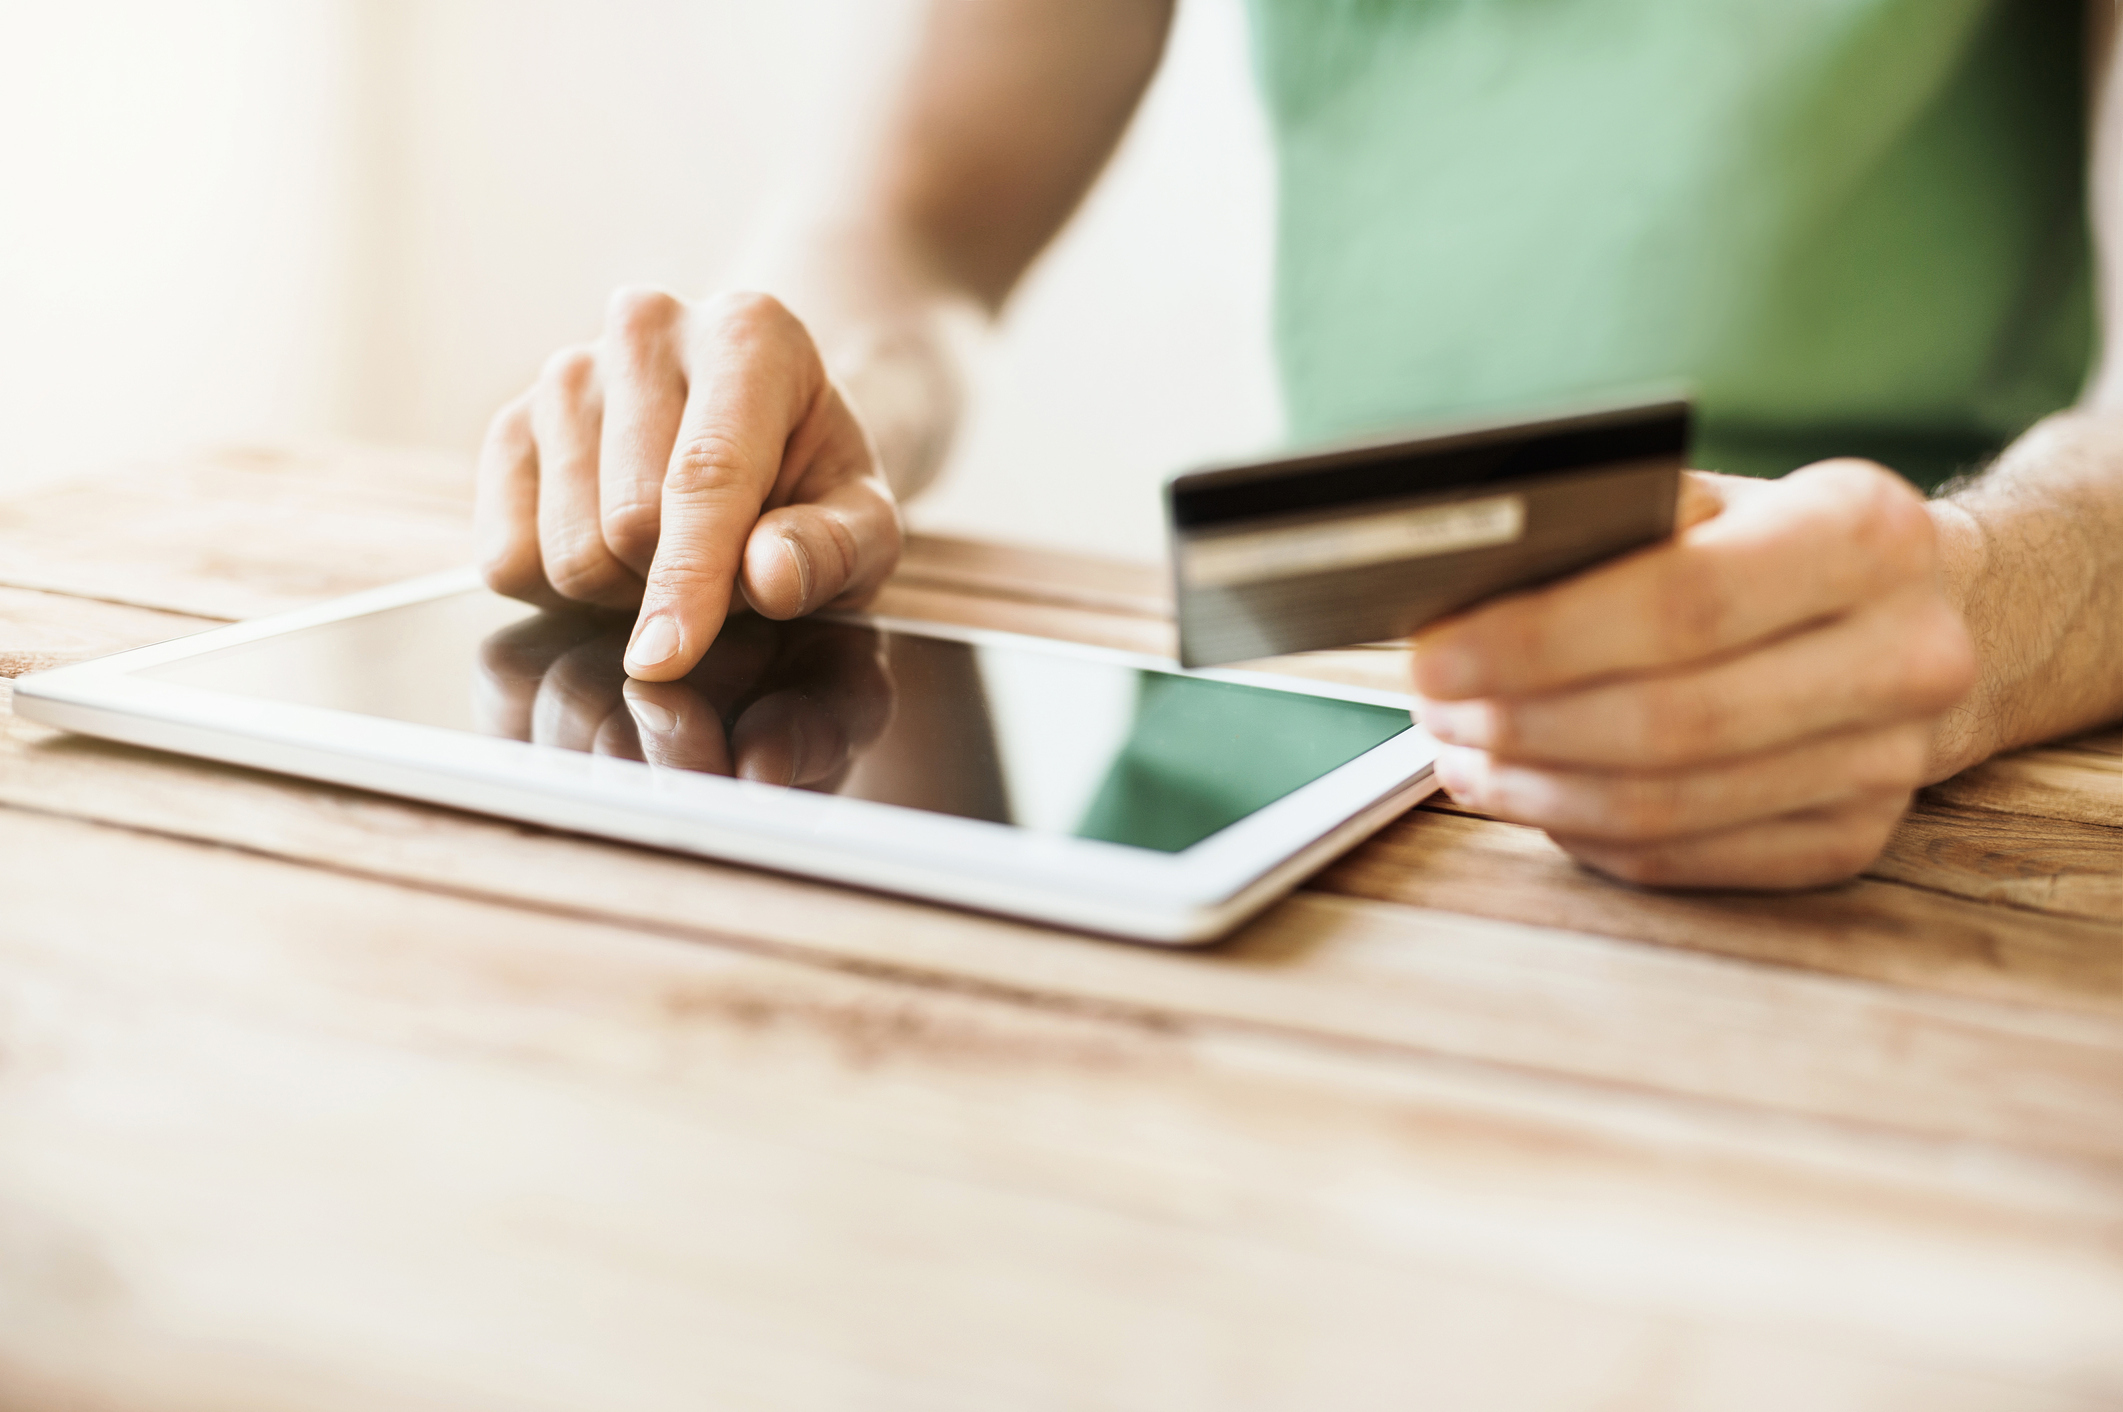 Online shopping can have risks (Getty Images)